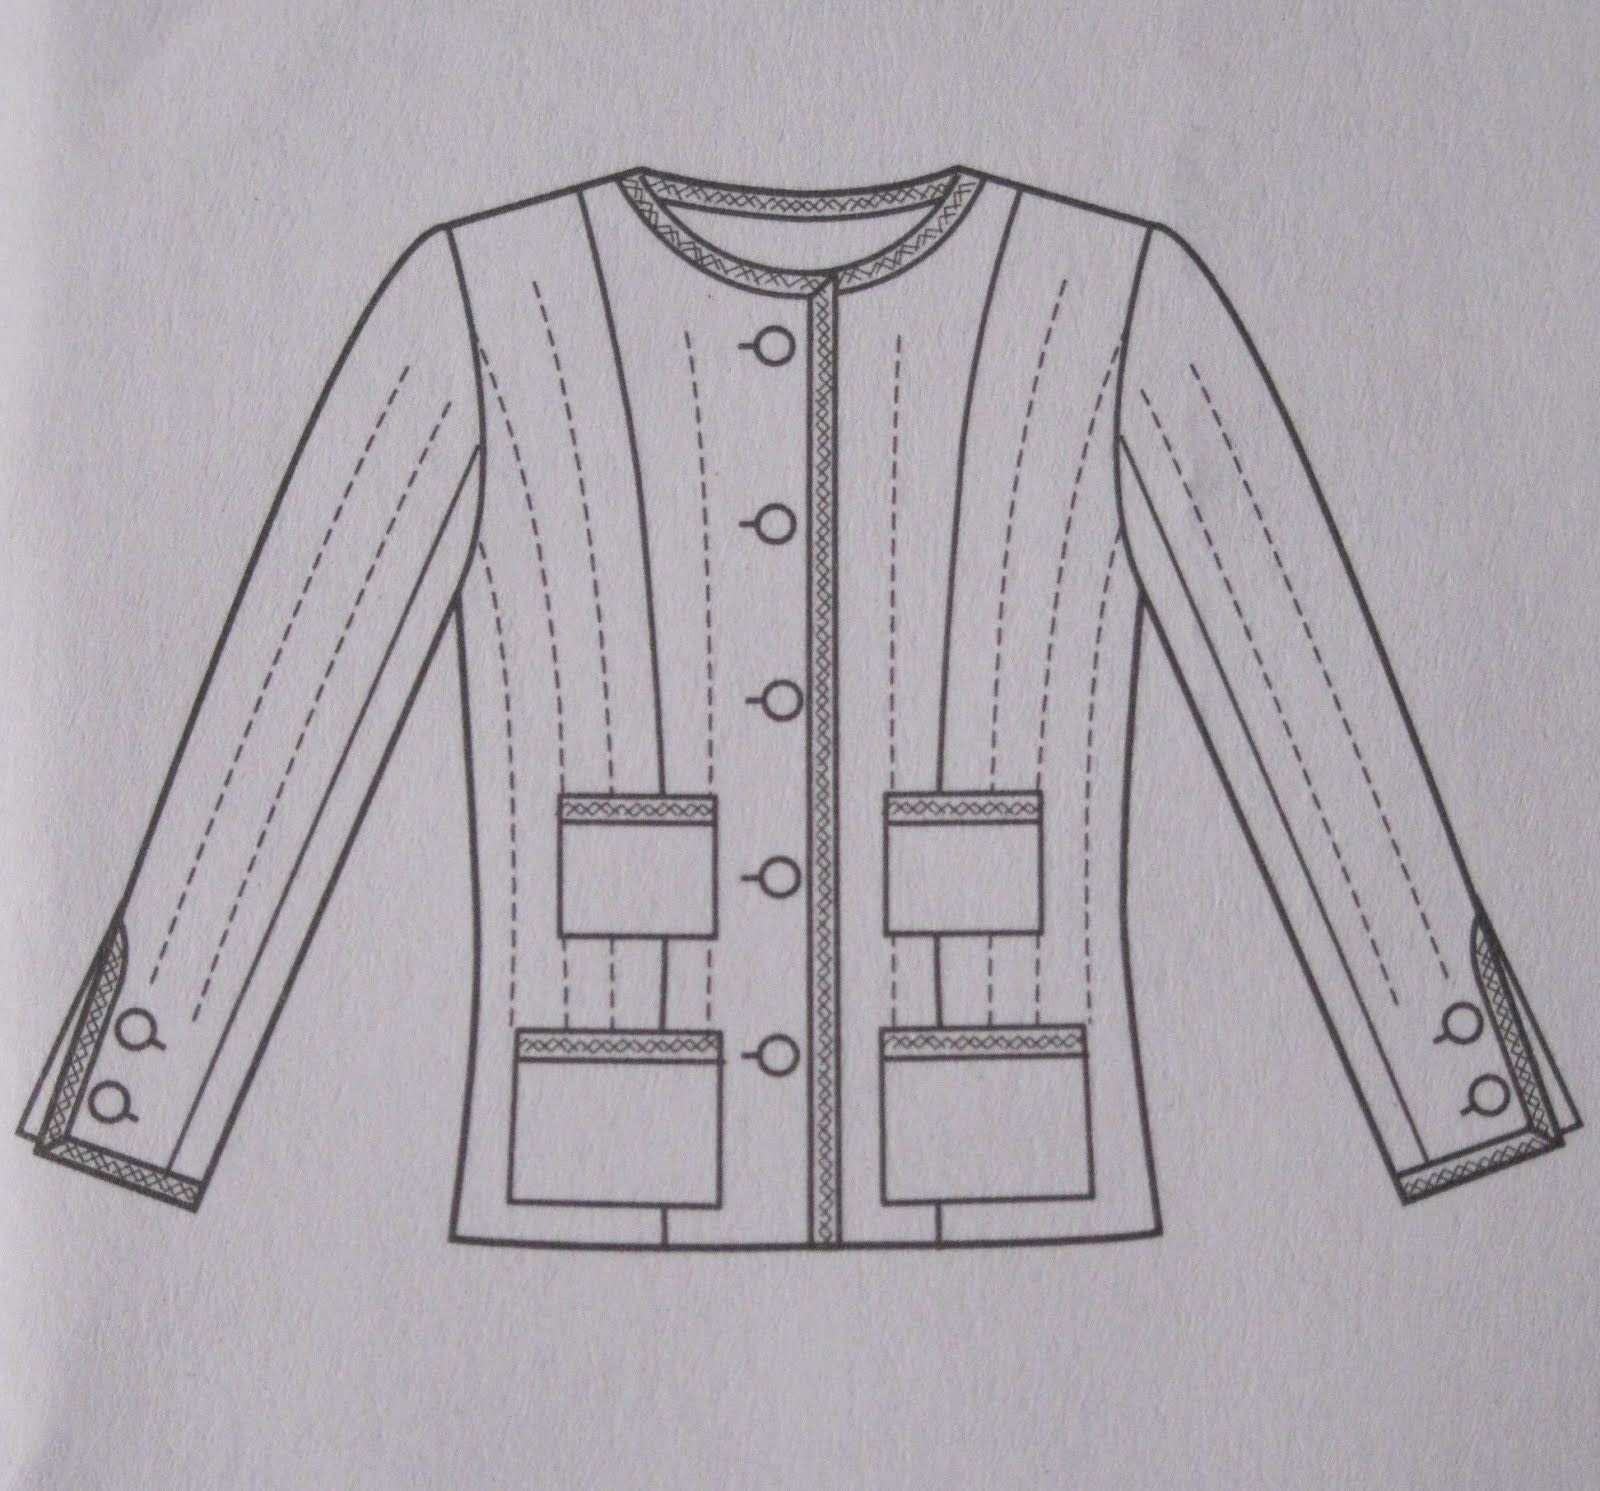 Everything Just So: DIY Chanel Jacket: The Resources